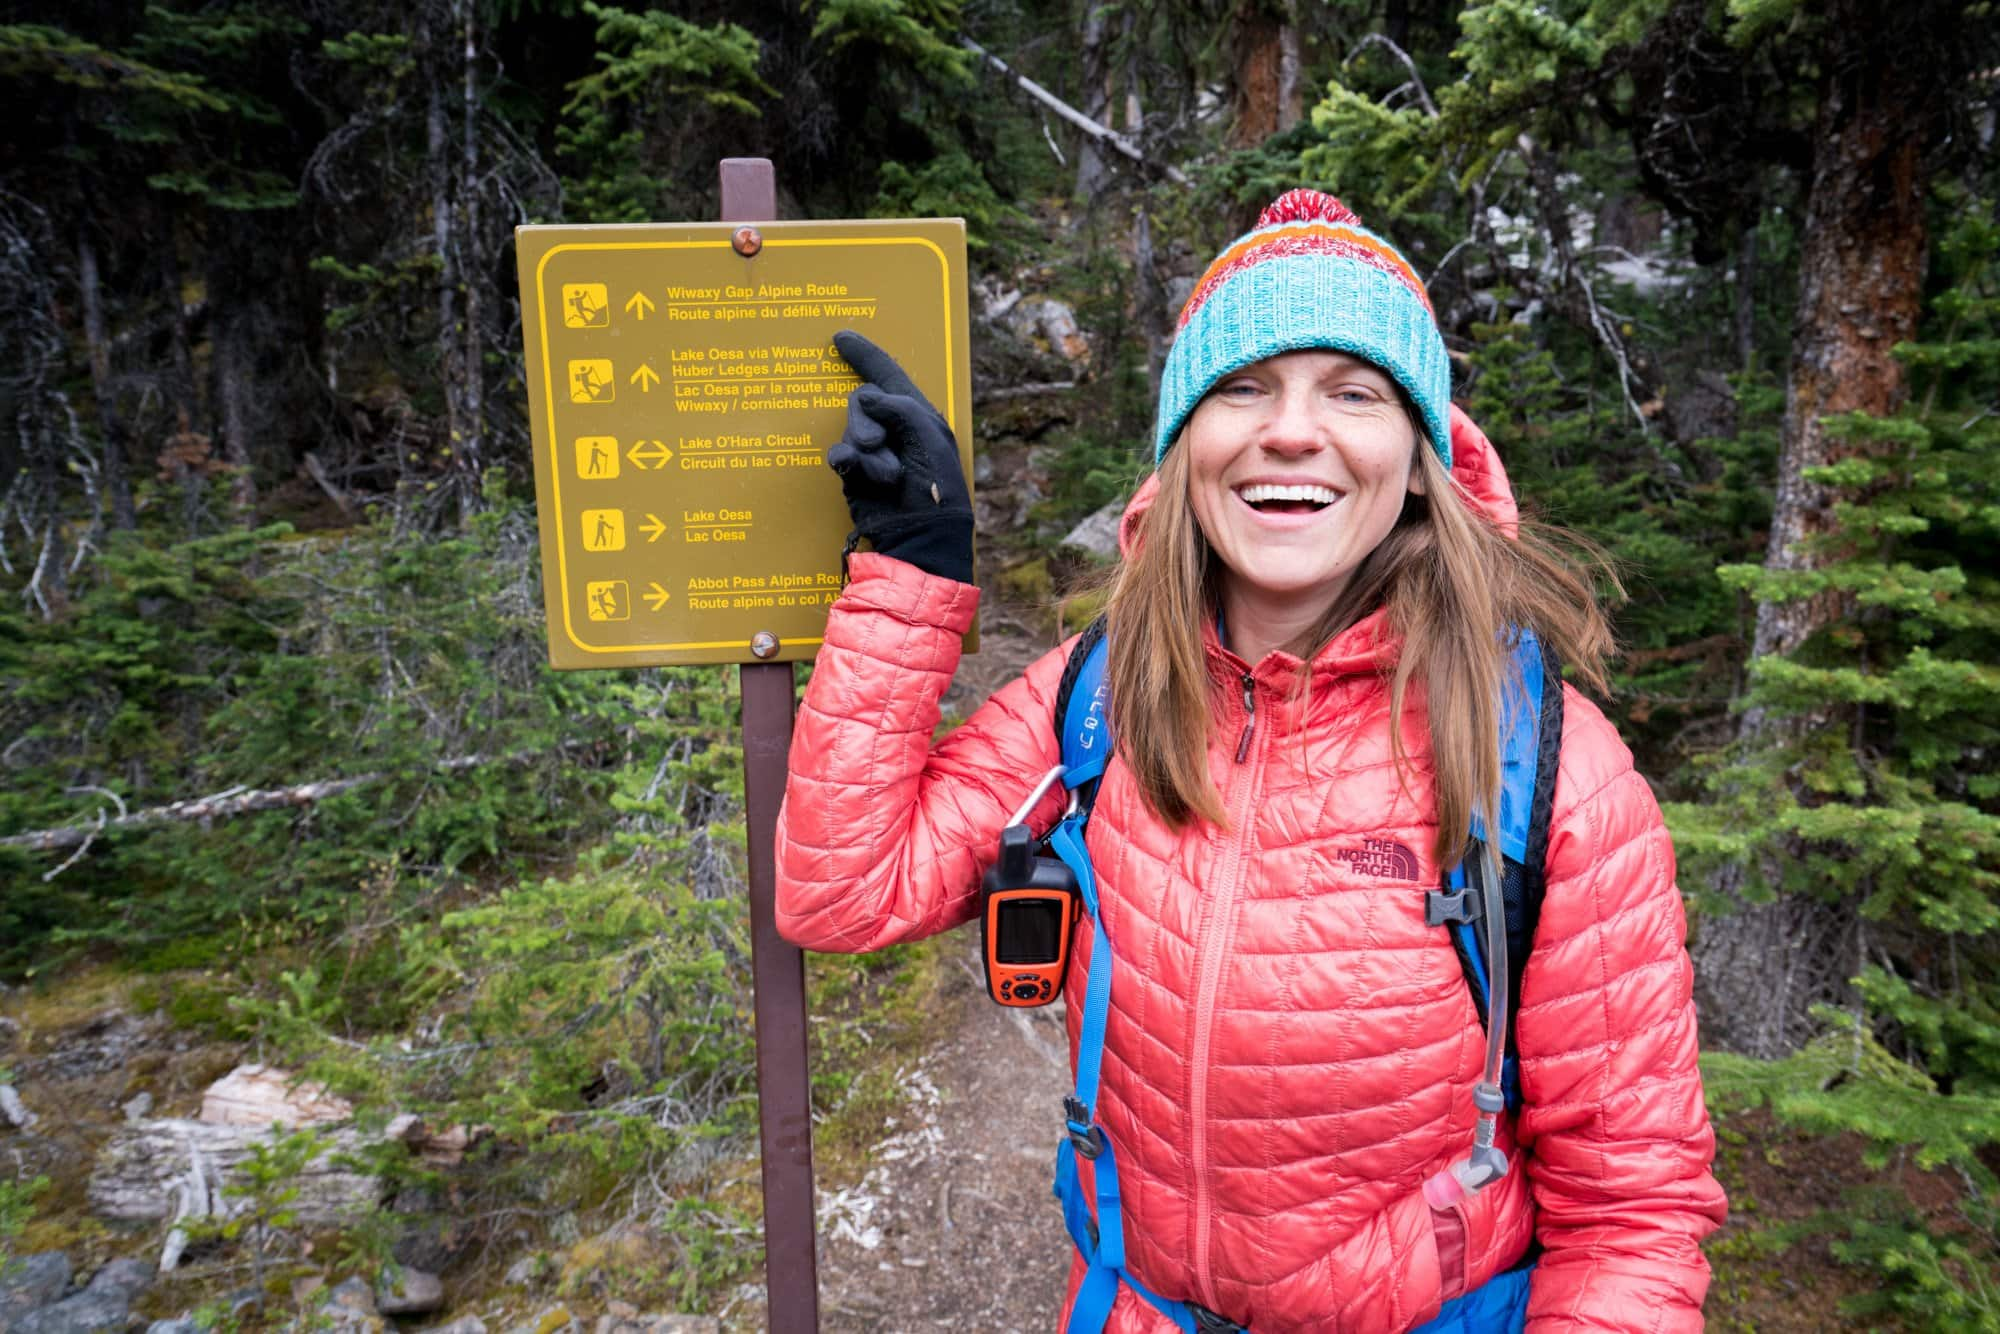 If you've ever been lost while hiking, you know it's a scary thing....but you shouldn't let the fear of getting lost hold you back. In our new blog post, we share essentials tips and tools you need to become a skilled navigator.